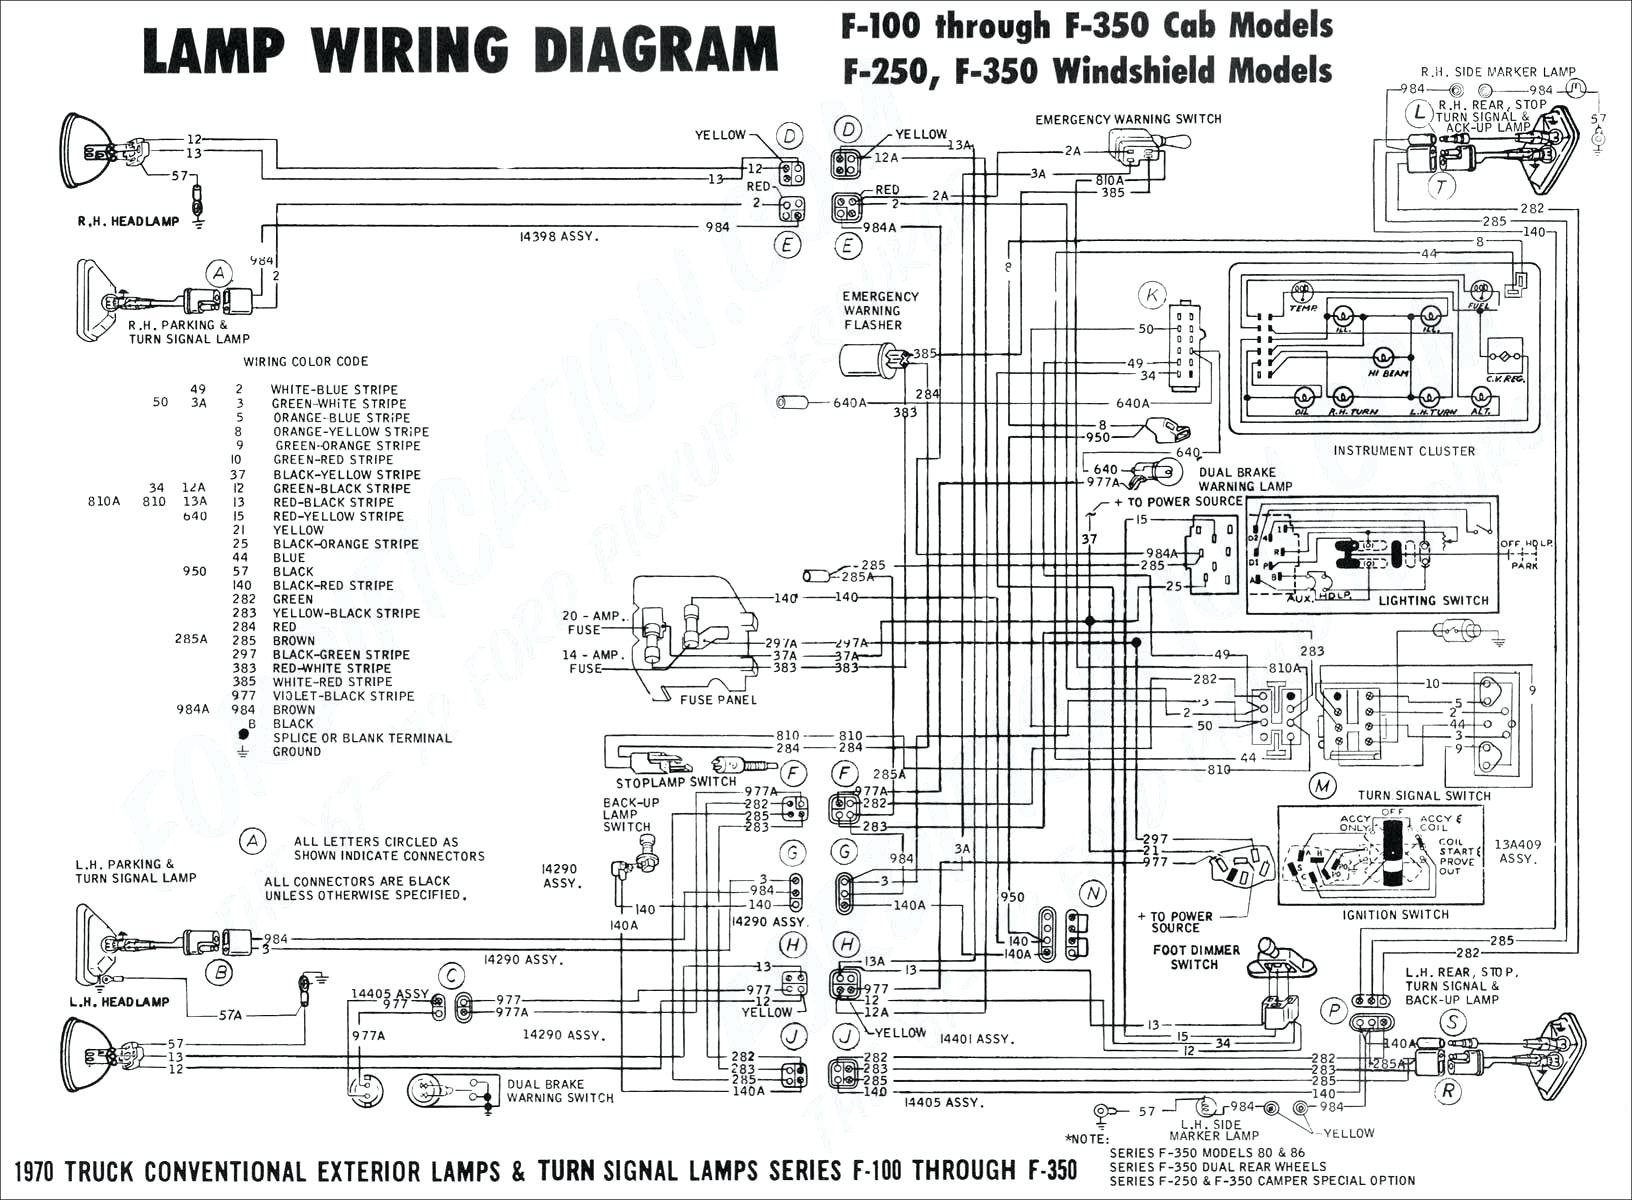 99 Lexu Gs300 Ignition Coil Wiring Diagram